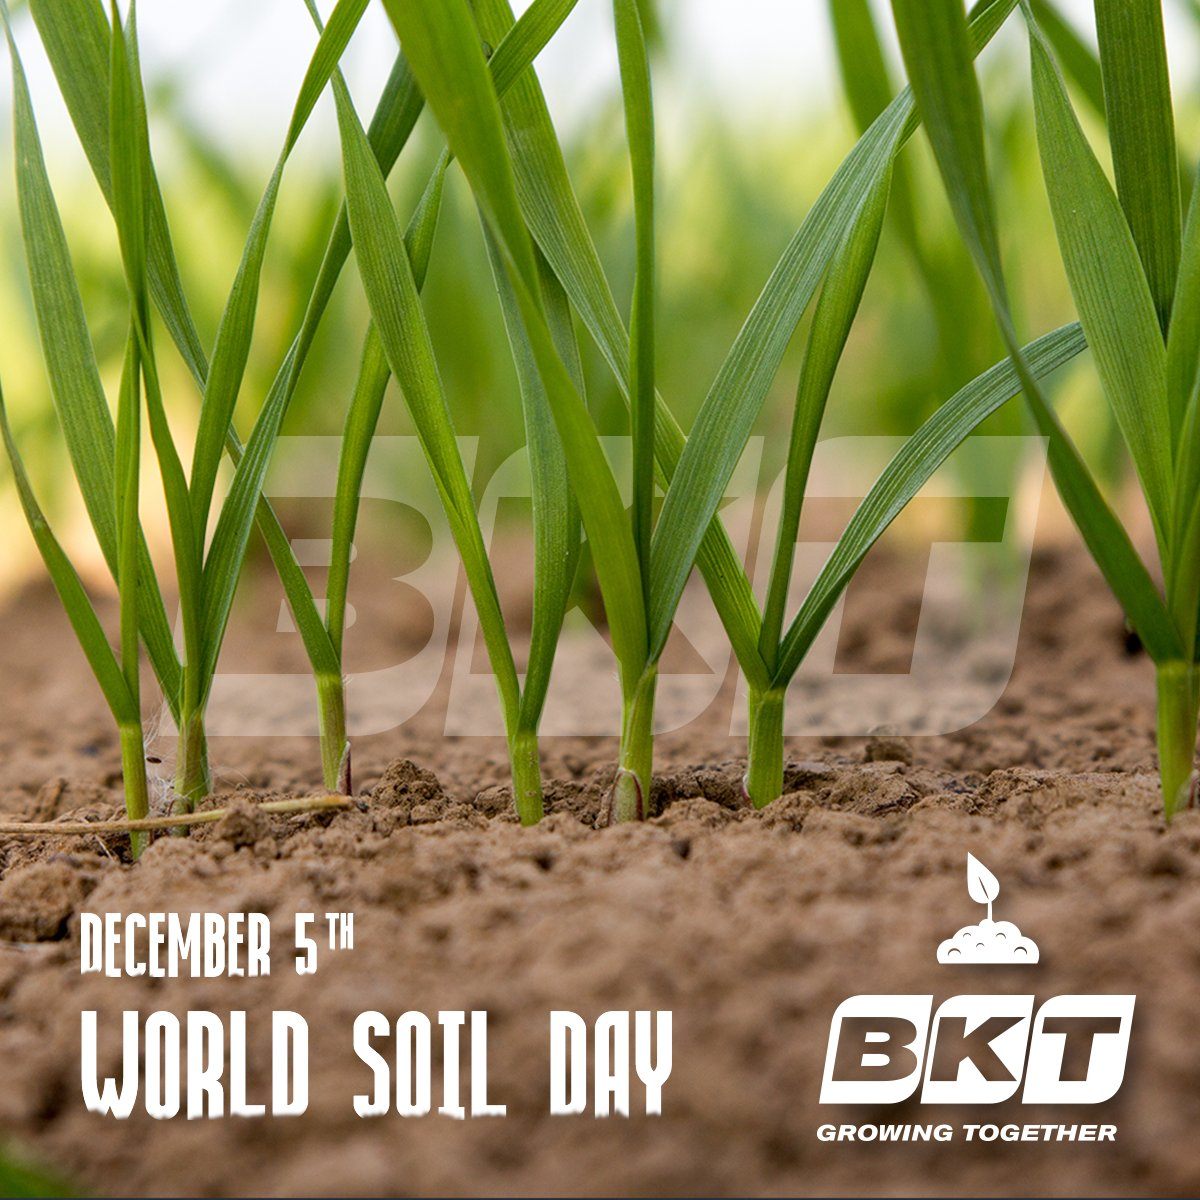 A #sustainable use of the soil inspires our work, every day. Today BKT celebrates #WorldSoilDay 2016! https://t.co/PF7tL6bPBC